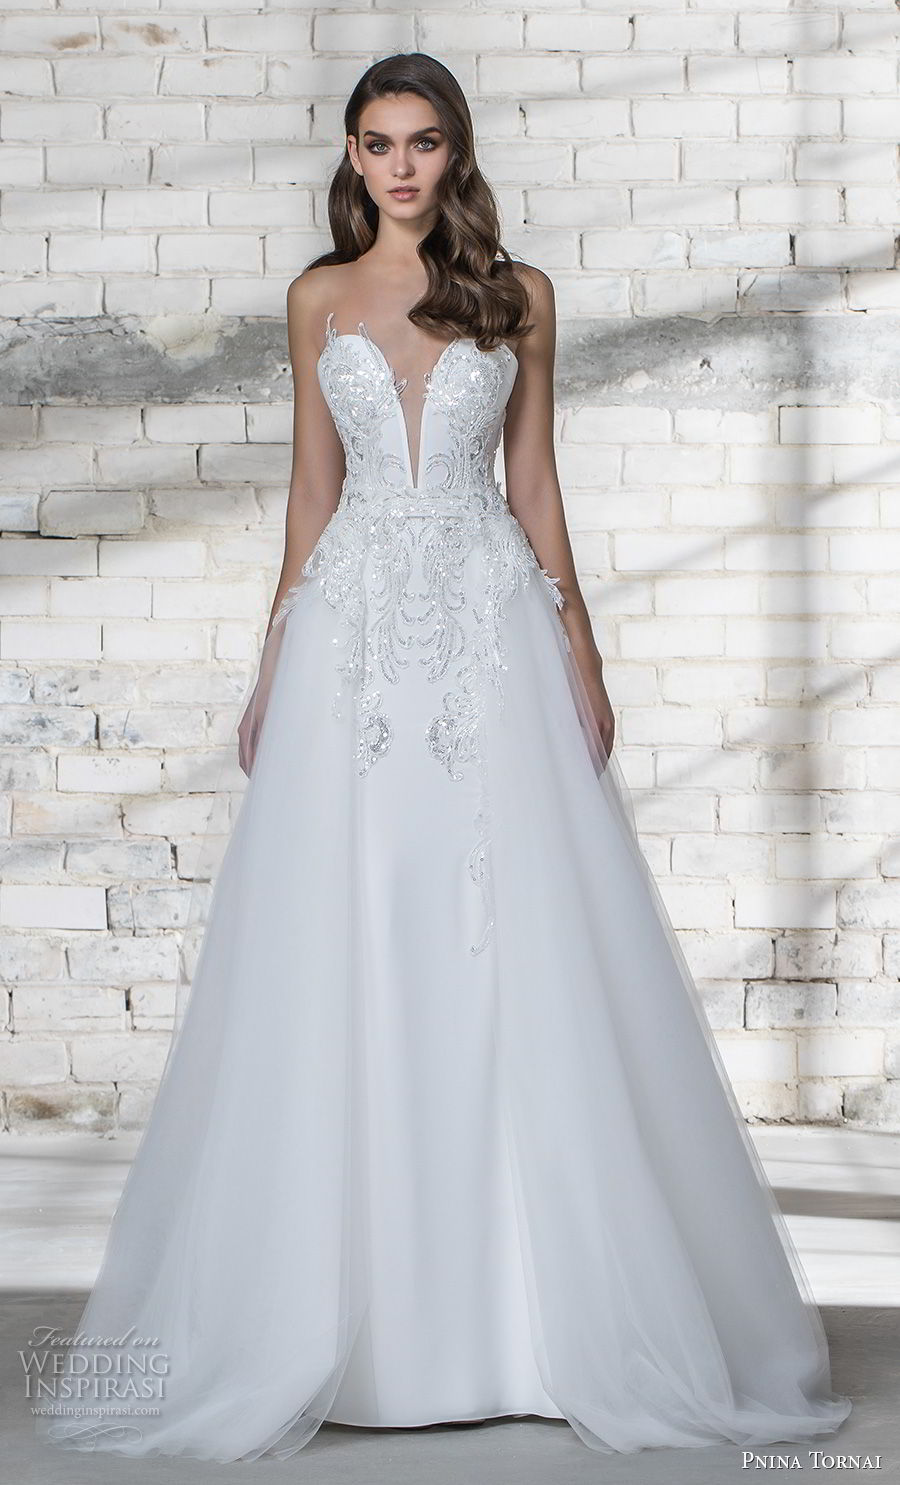 pnina tornai 2019 love bridal strapless deep plunging sweetheart neckline heavily embellished bodice glitzy romantic sheath wedding dress a line overskirt sheer lace back chapel train (1) mv